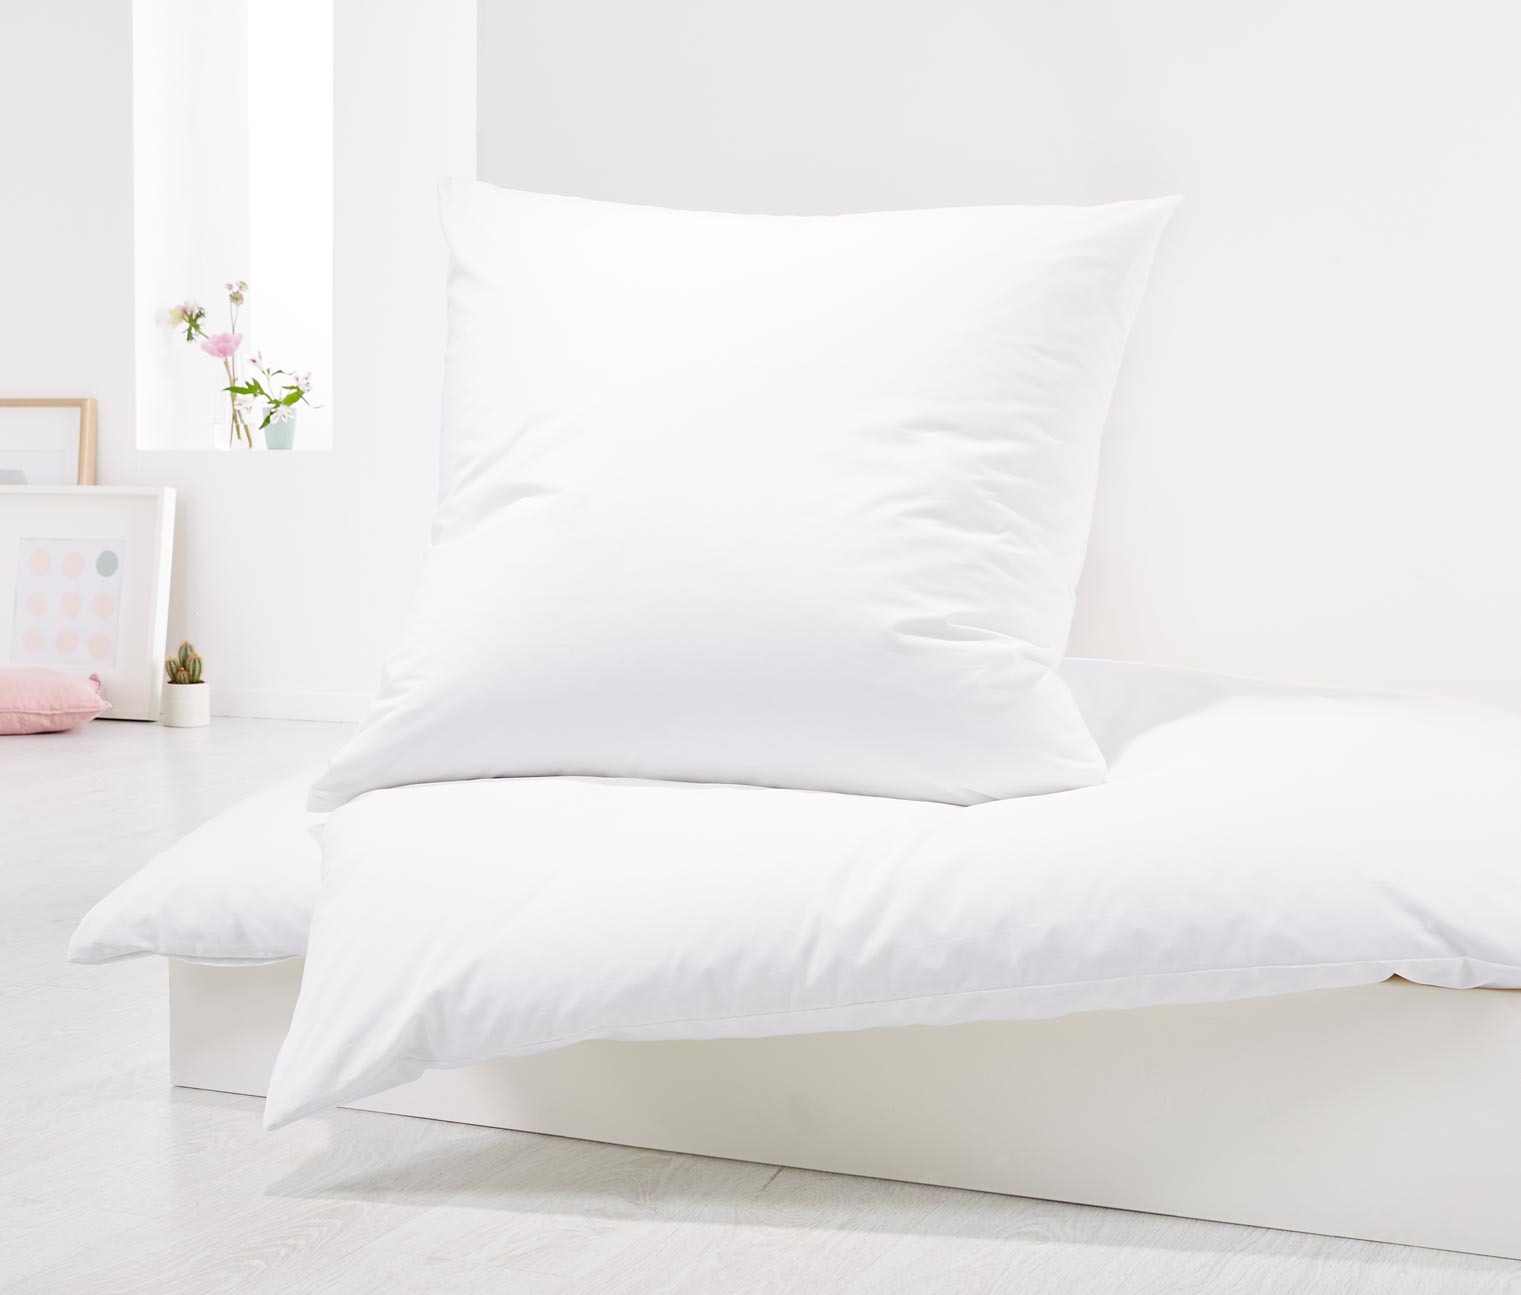 Percale Duvet Set 80 x 70, White